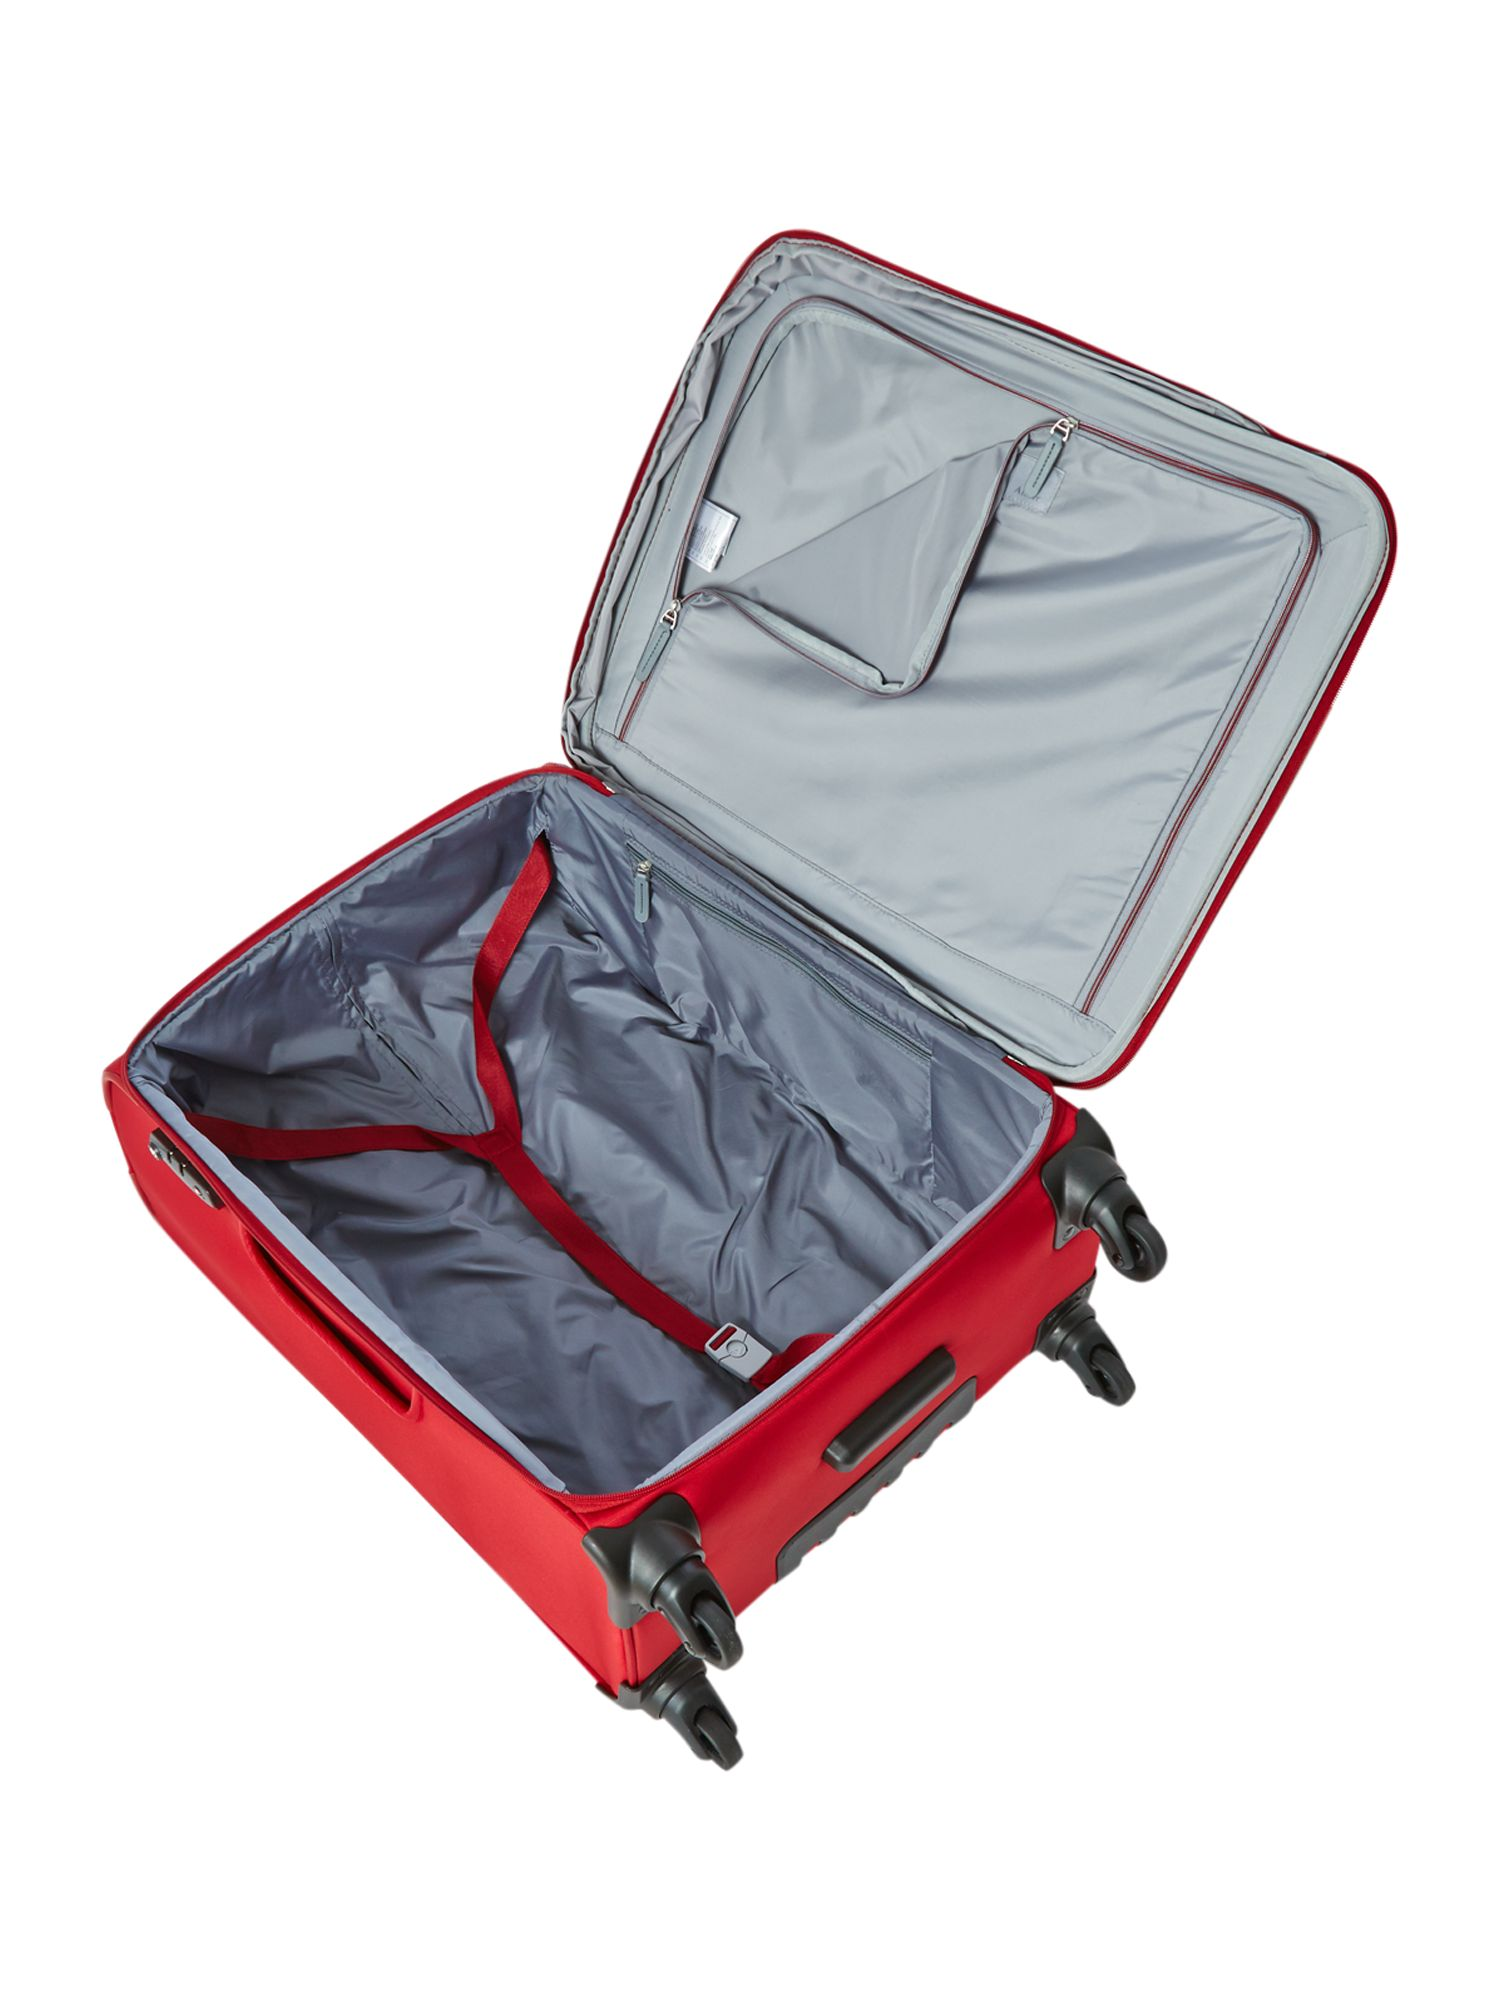 Cyberlite red medium rollercase